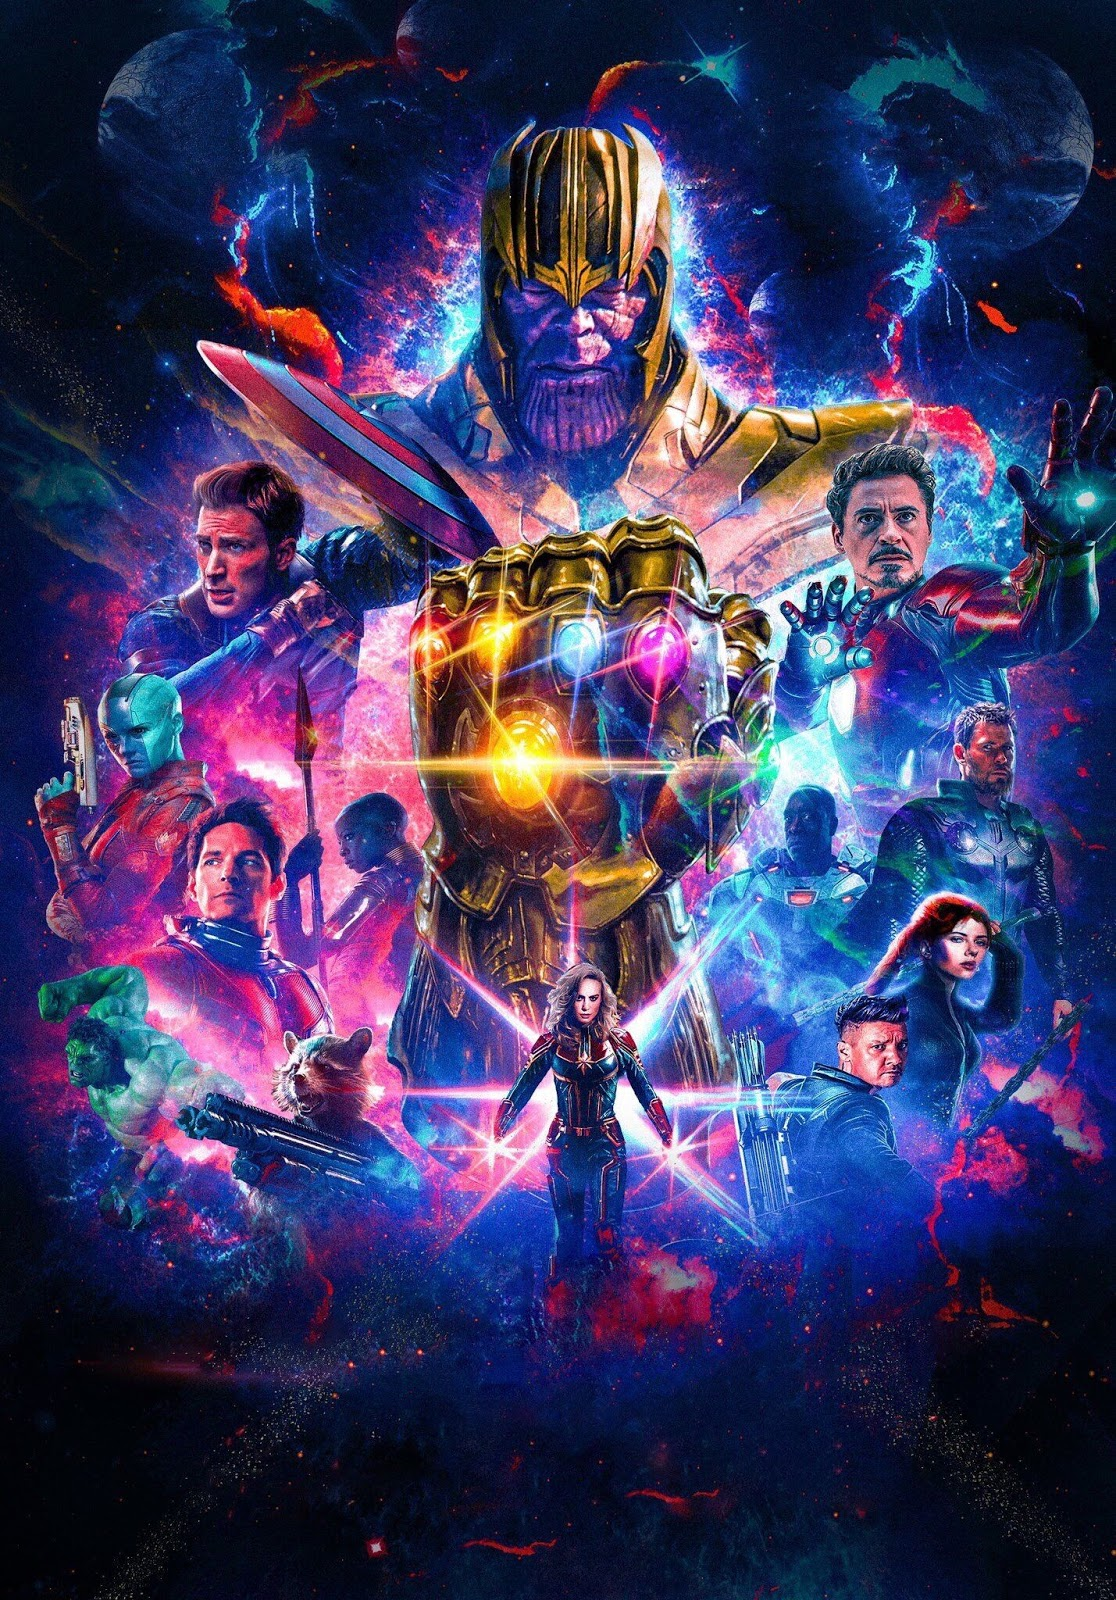 Avengers 4 End Game And Infinity War Hd Wallpapers Avengers Endgame Wallpaper Hd 5505 Hd Wallpaper Backgrounds Download